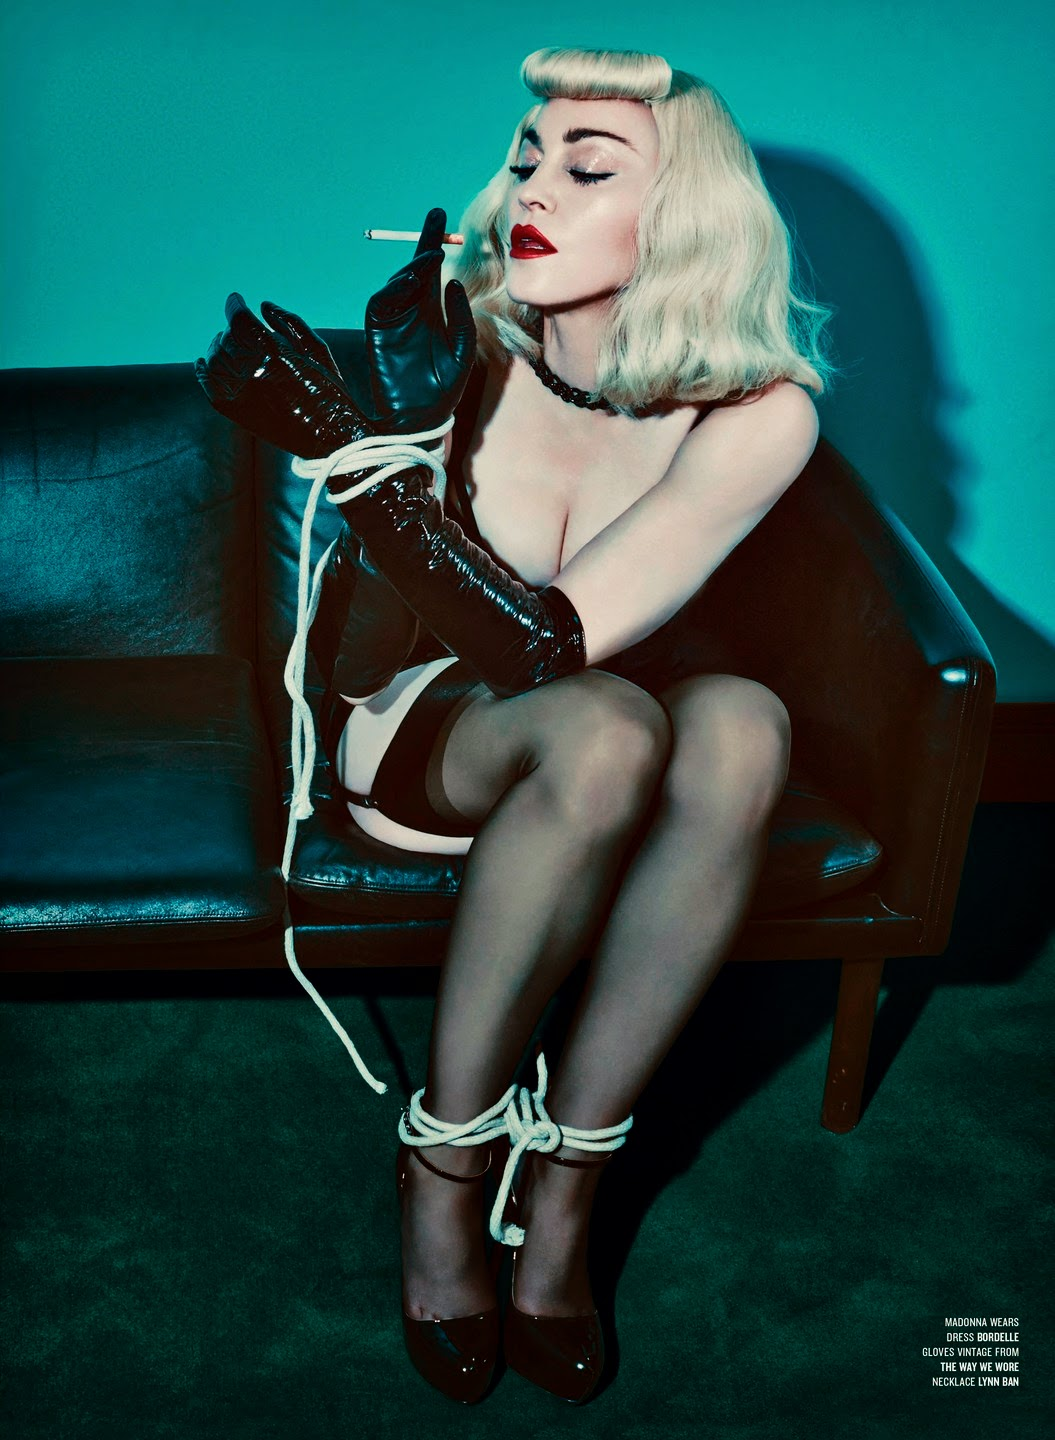 katy-perry-and-madonna-by-steven-klein-for-v-magazine-89-summer-2014-5